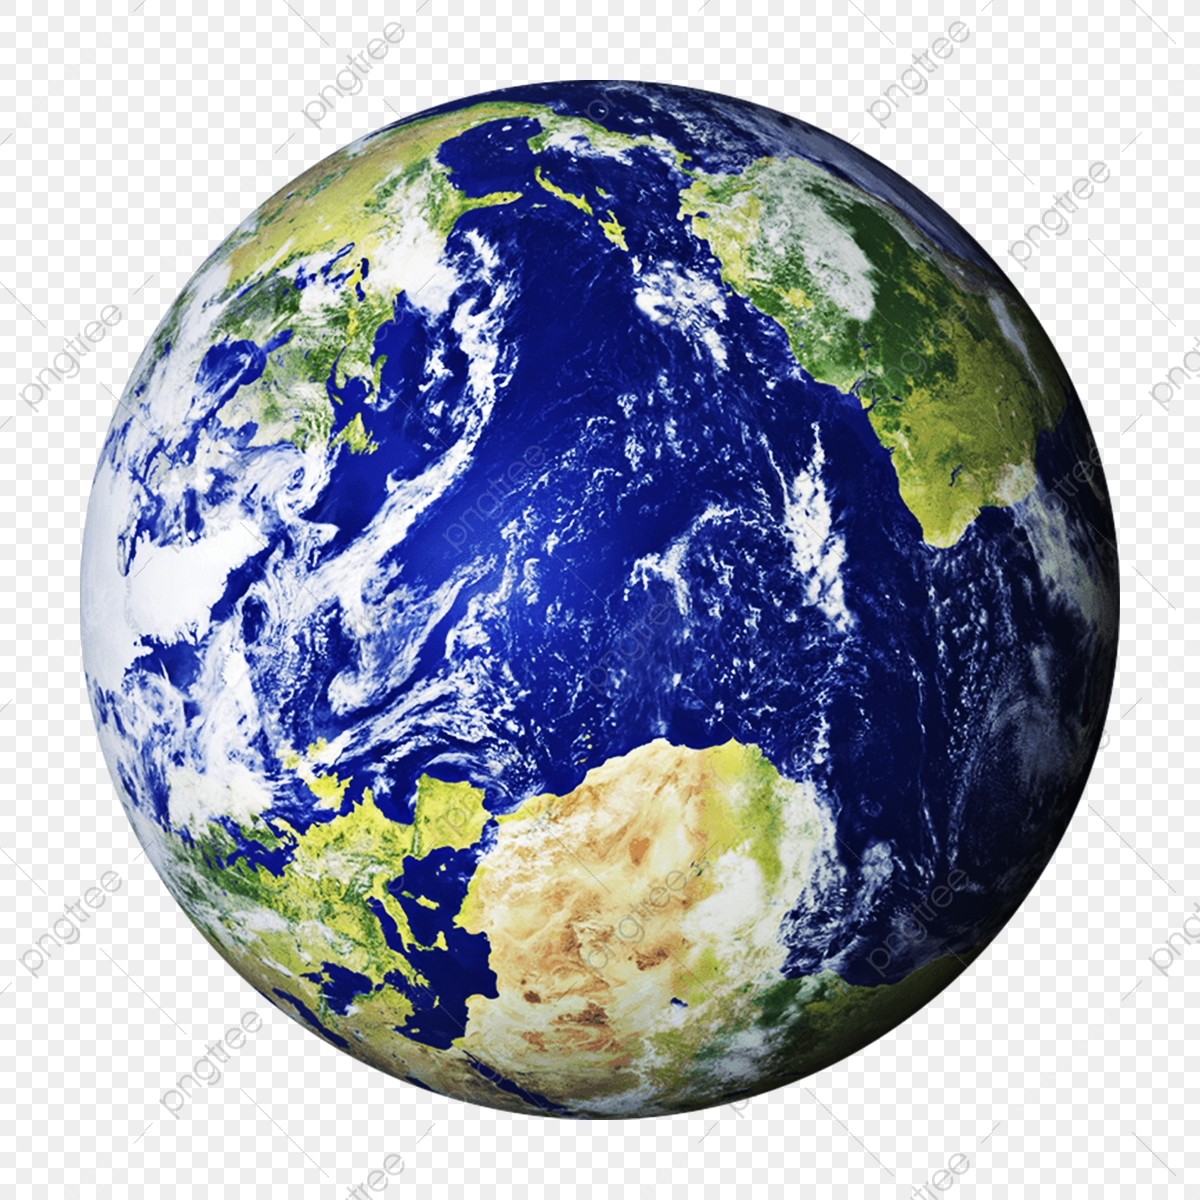 Elements blue globe png. Earth clipart beautiful